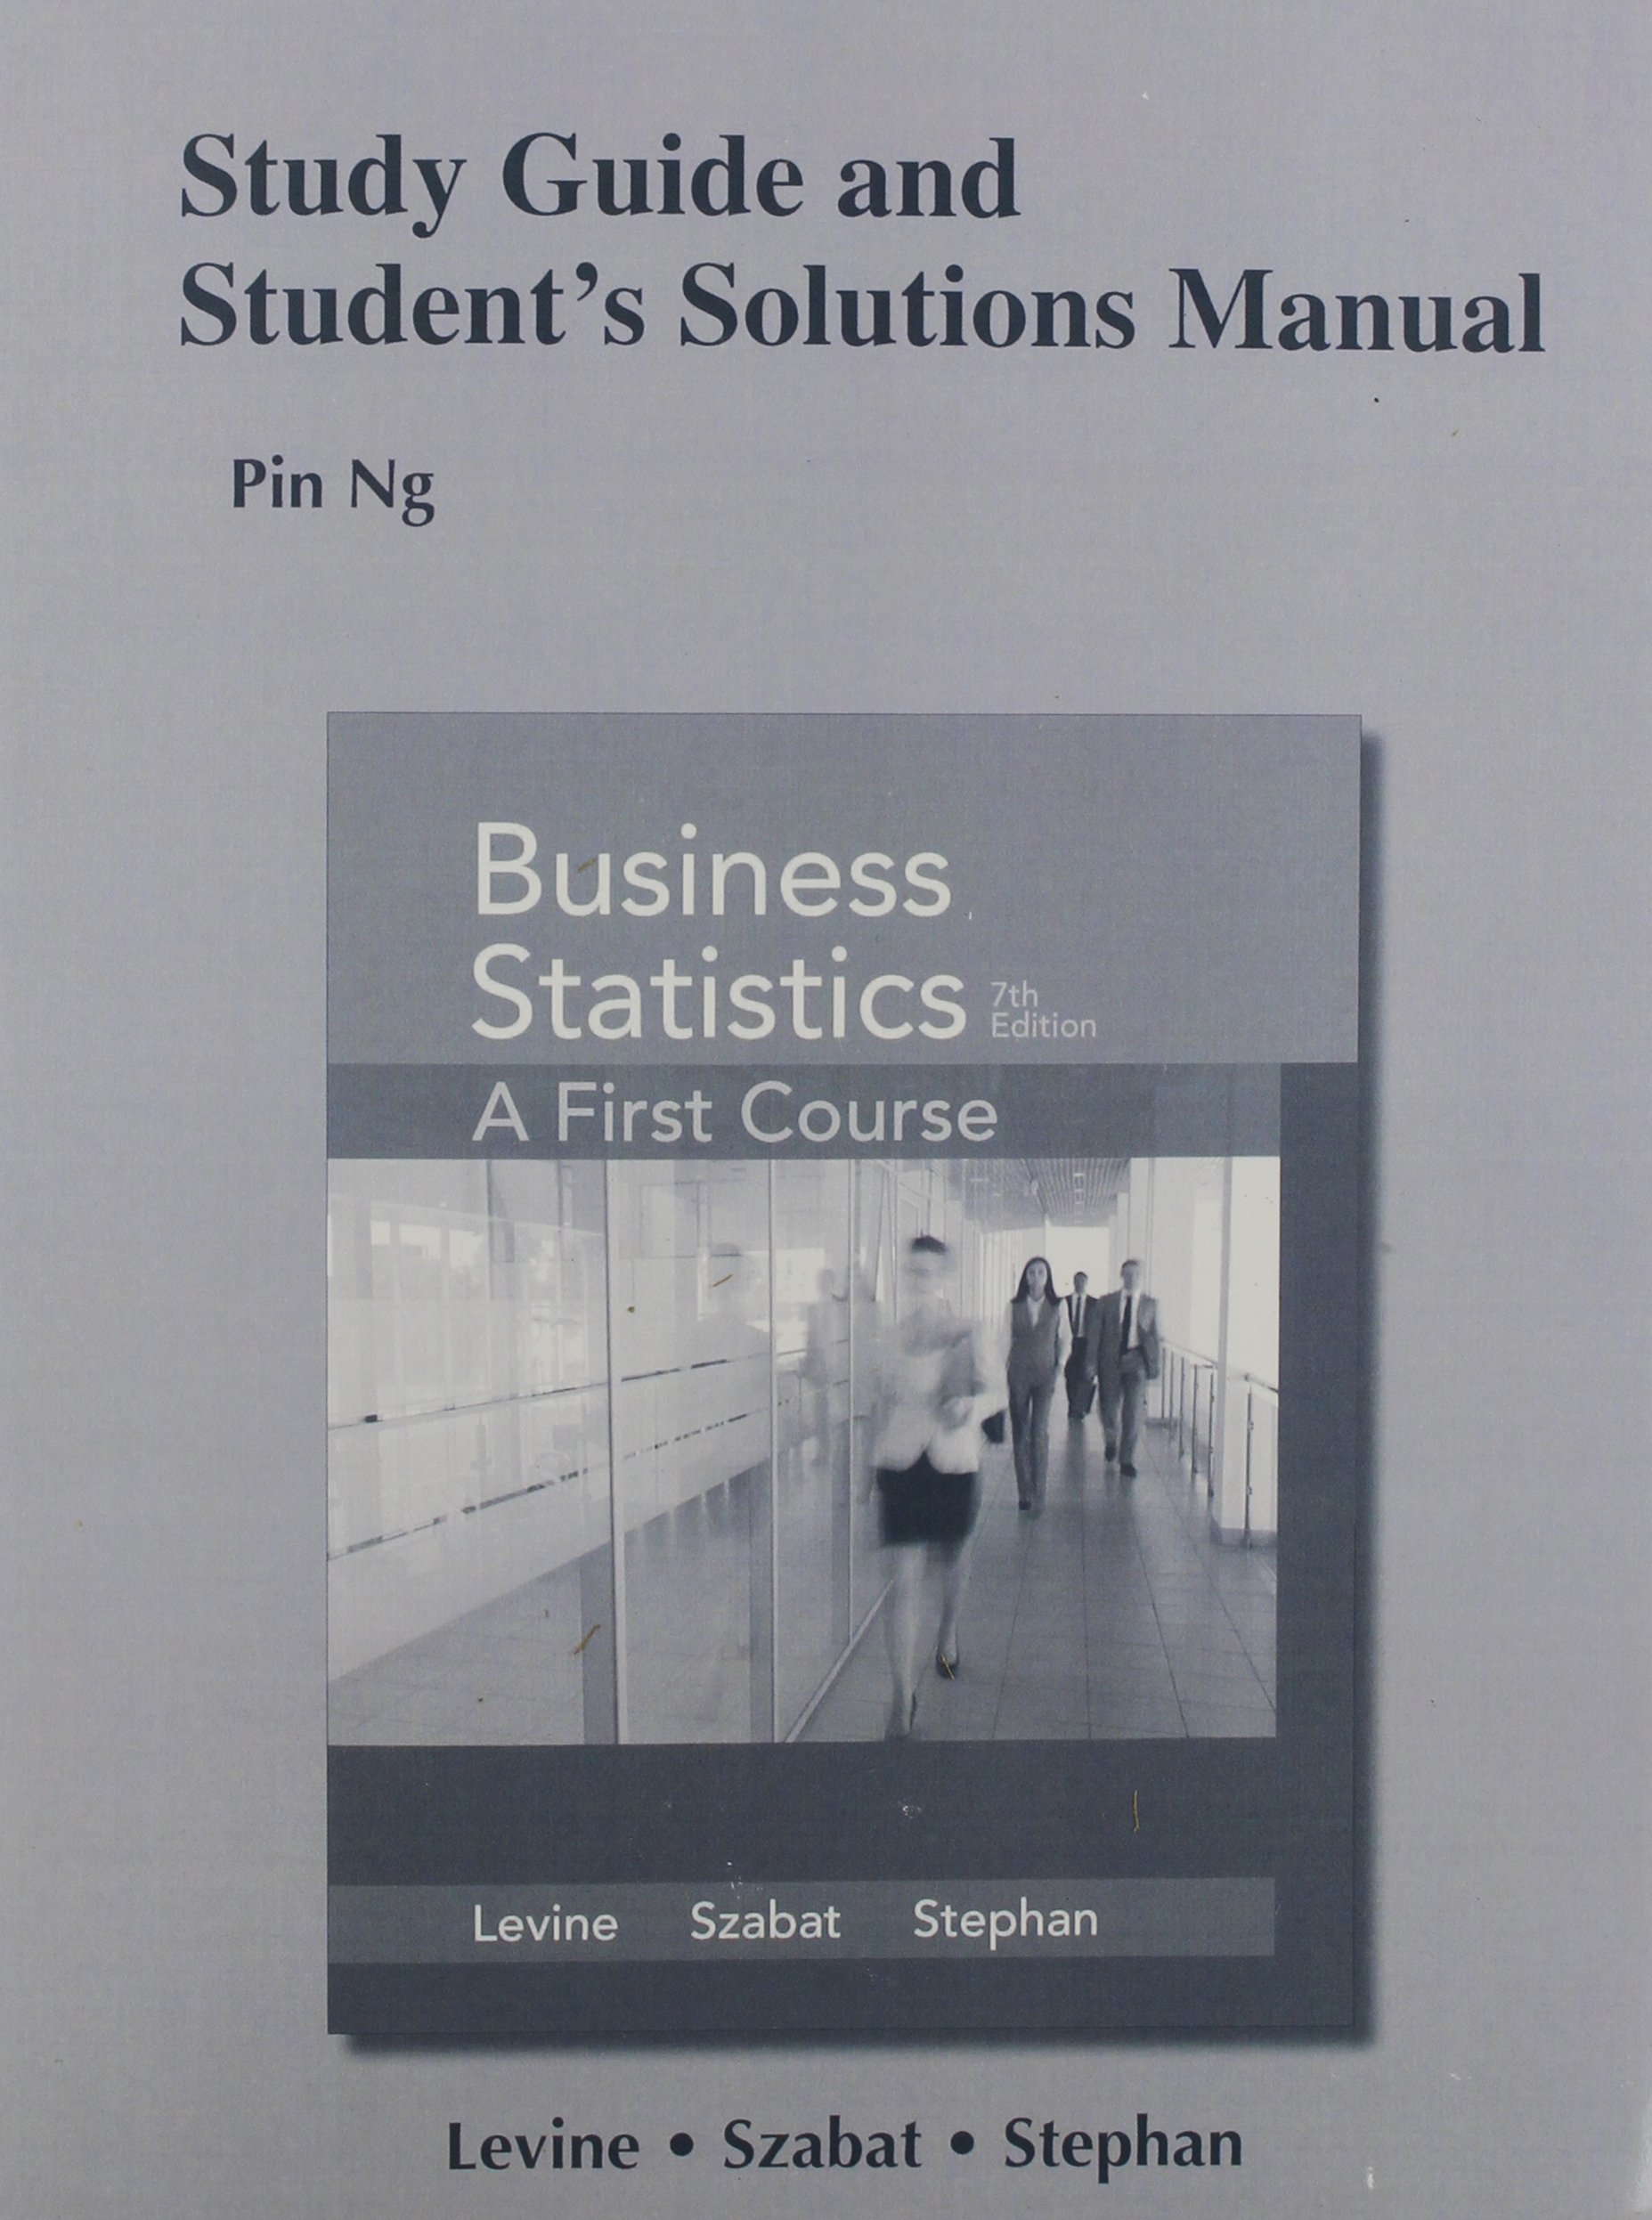 Study Guide and Student's Solutions Manual for Business Statistics: A First  Course: Amazon.co.uk: David M. Levine, Kathryn A. Szabat, David F. Stephan:  ...